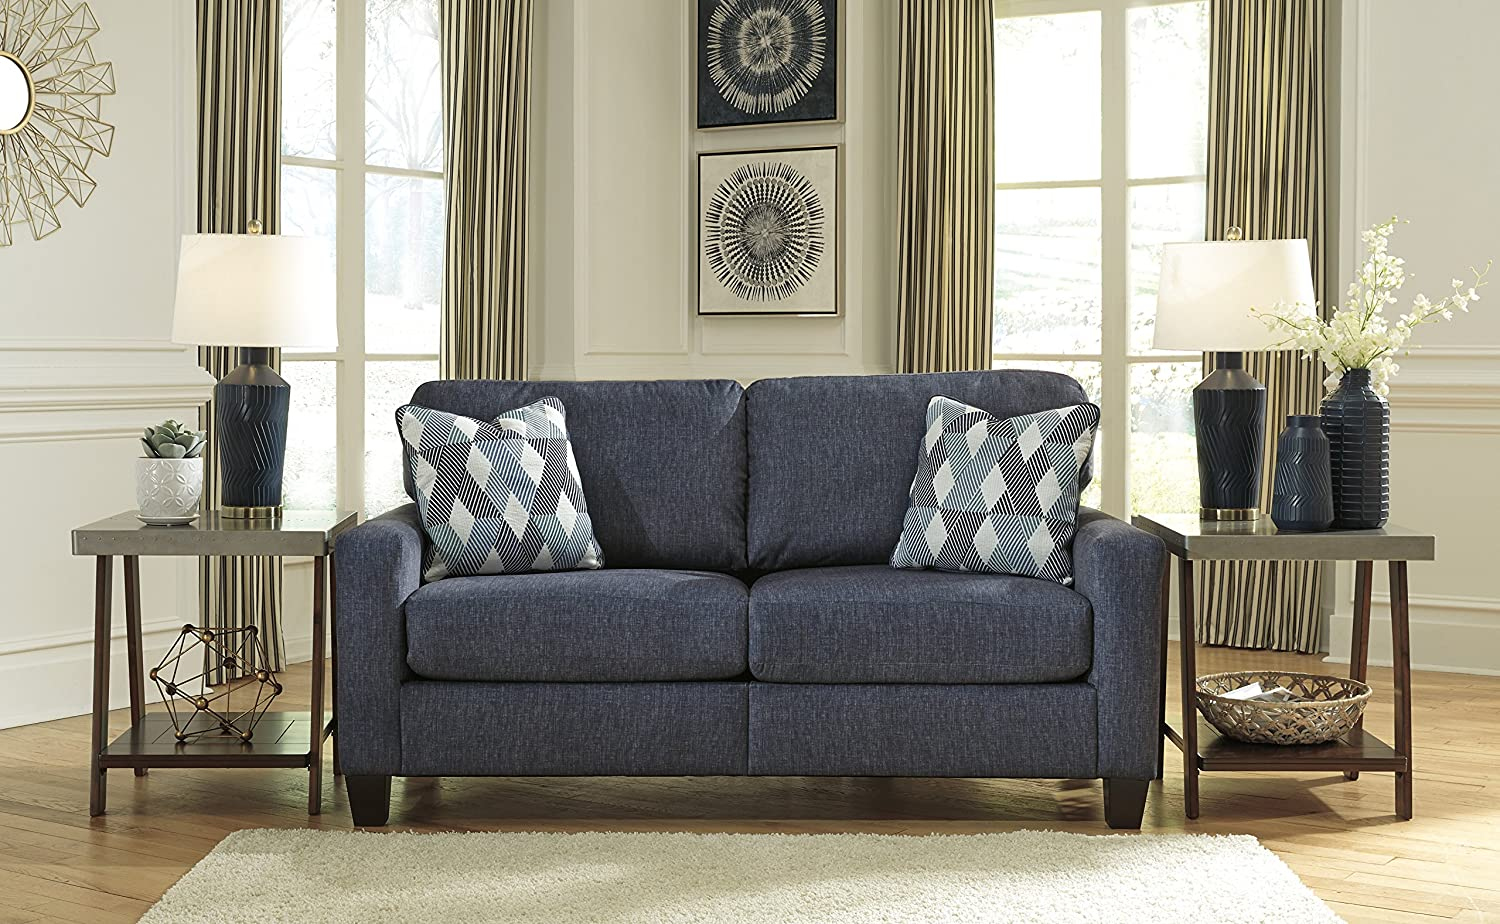 Ashley Furniture Signature Design - Burgos Contemporary Sofa - RTA Sofa in a Box - Modular Assembly - Navy